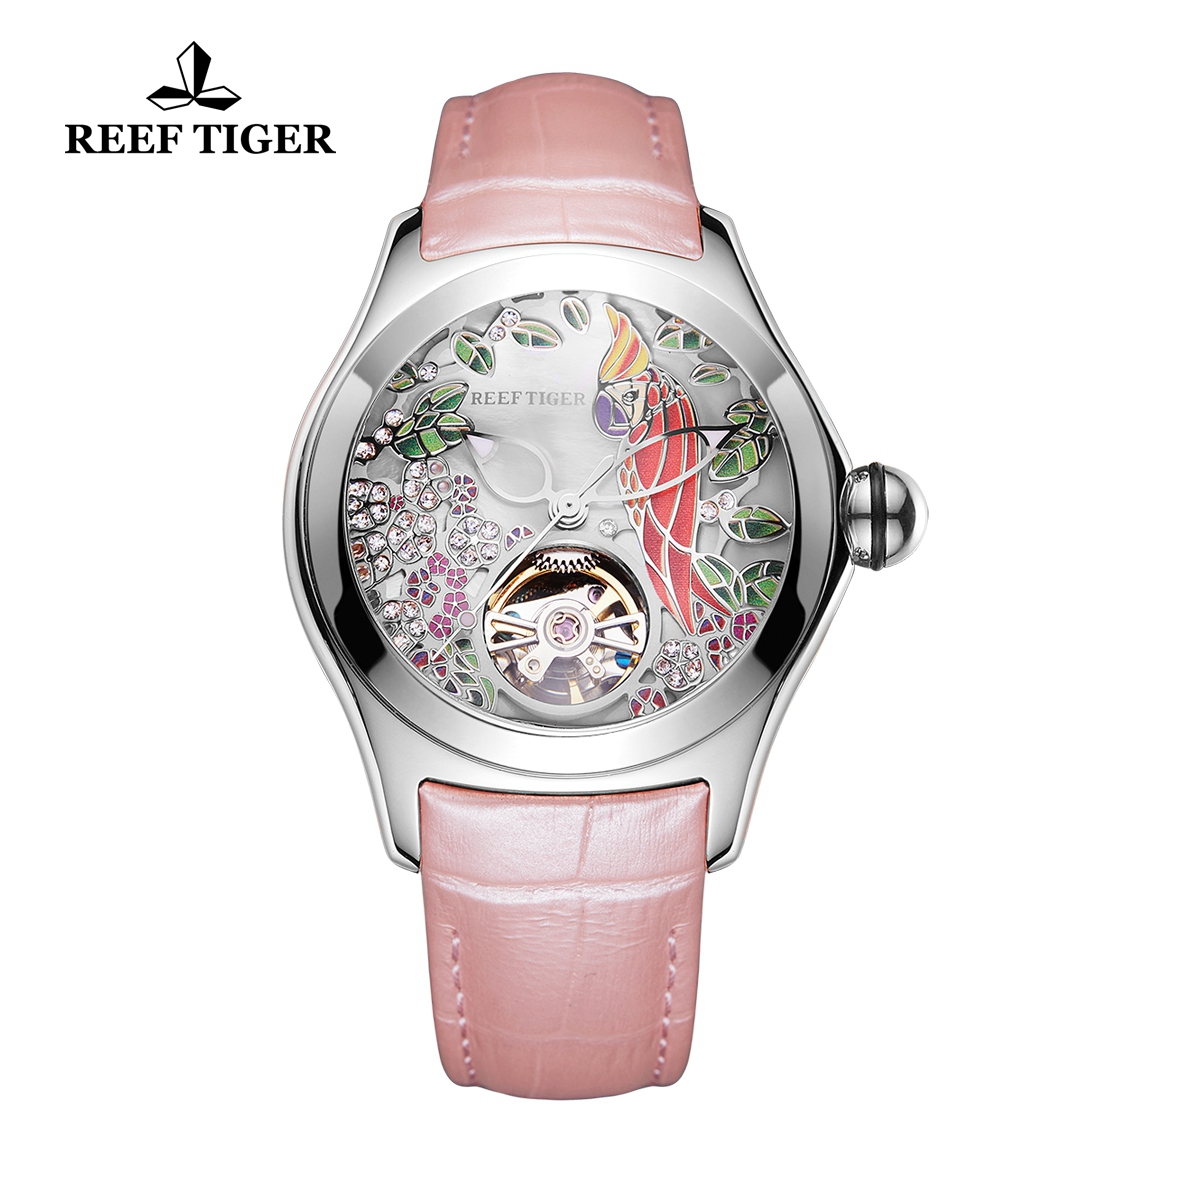 Reef Tiger Aurora Parrot Casual Watches Women Automatic Watch Steel Case Leather Strap RGA7105-YSP